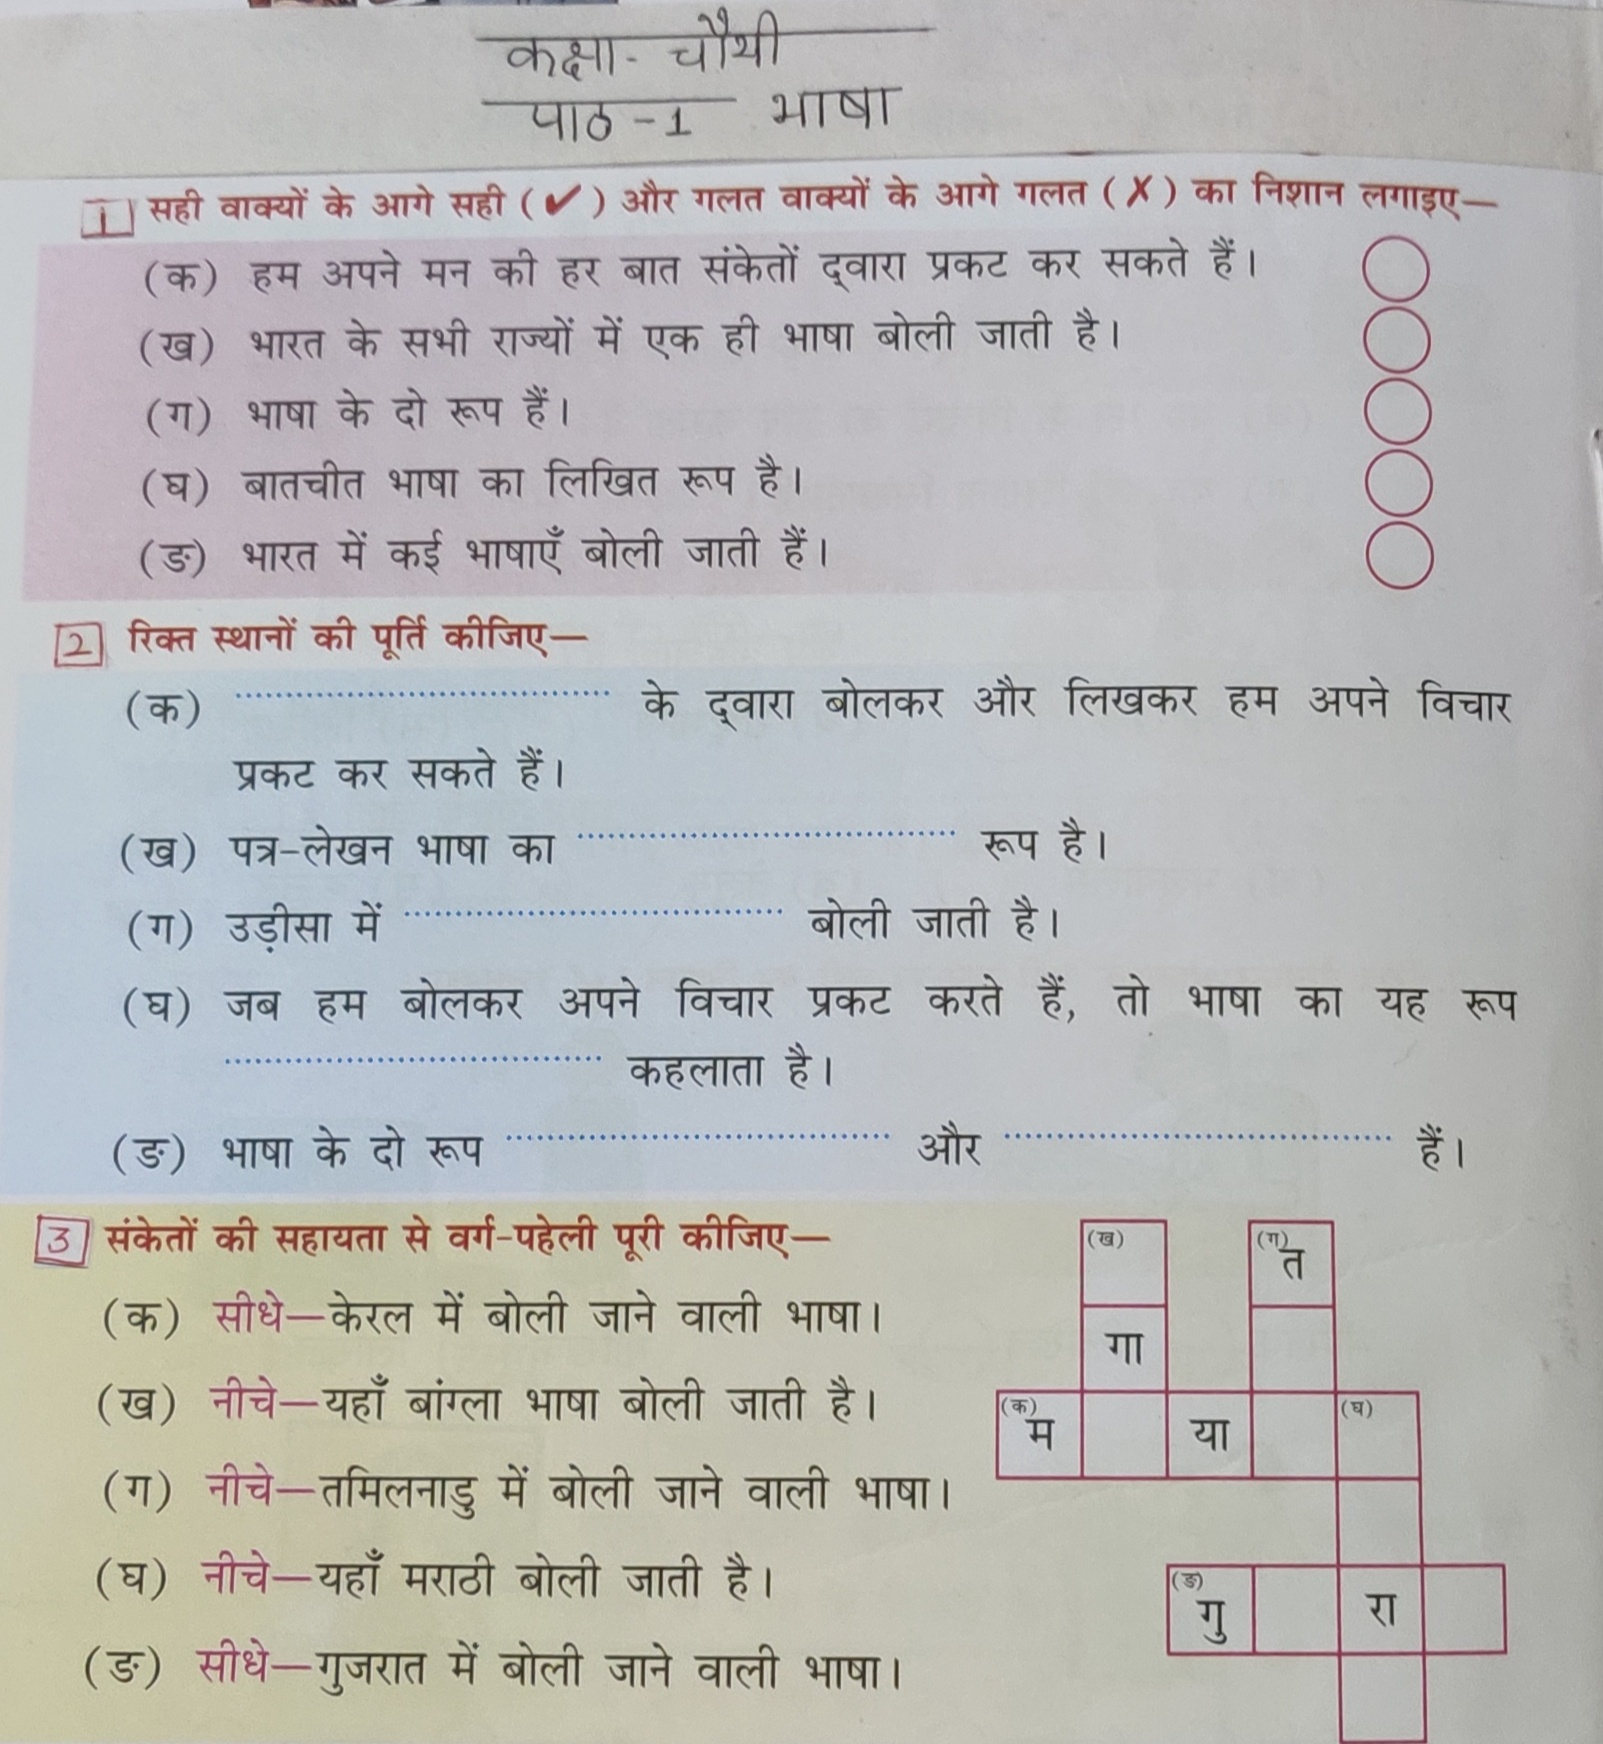 Hindi Class 4 Online Classes Cbse Worksheets 2020 21 Ncert Books Solutions Cbse Online Guide Syllabus Sample Paper